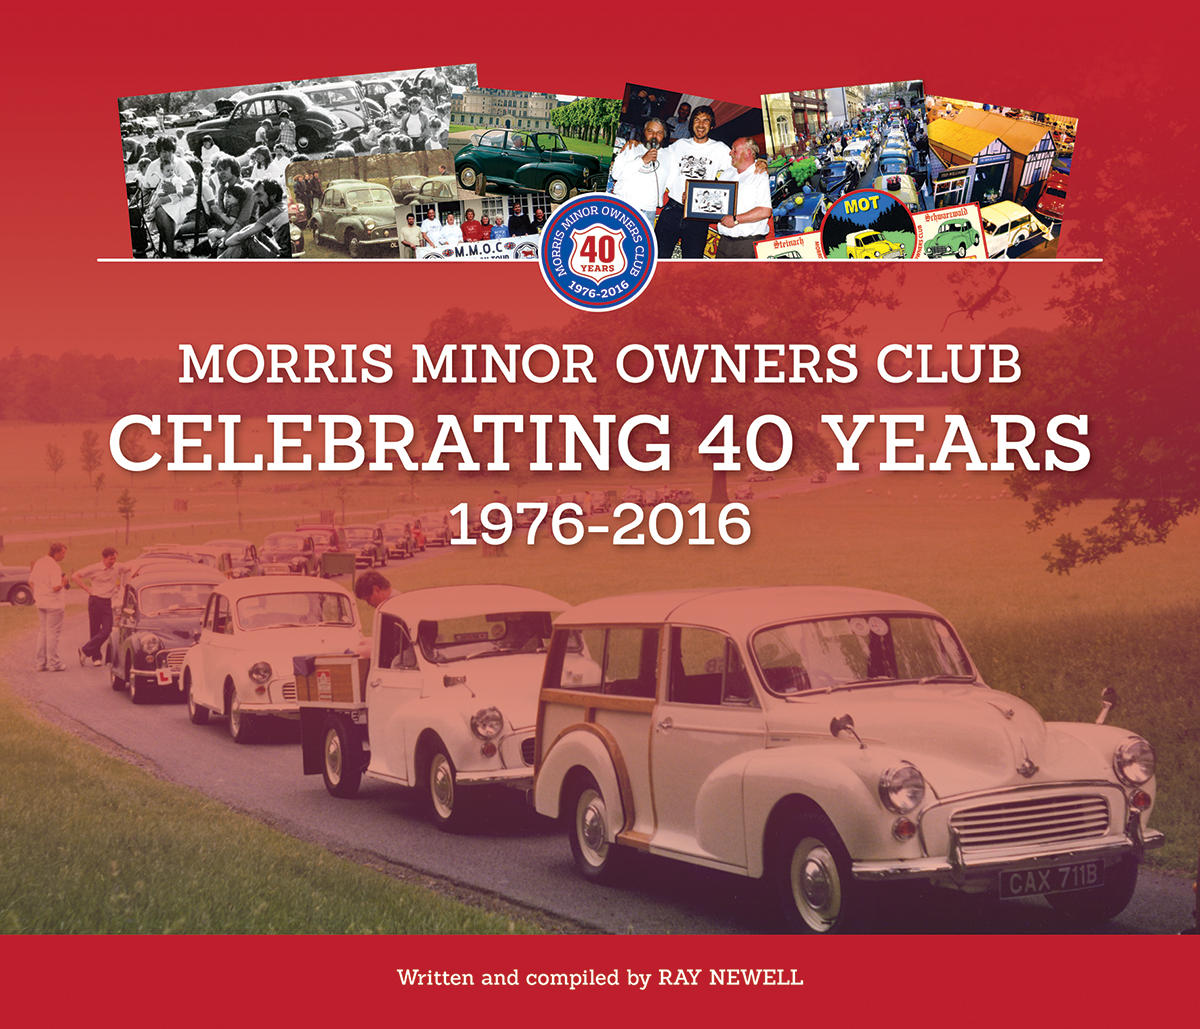 Morris Minor Owners Club Celebrating 40 years